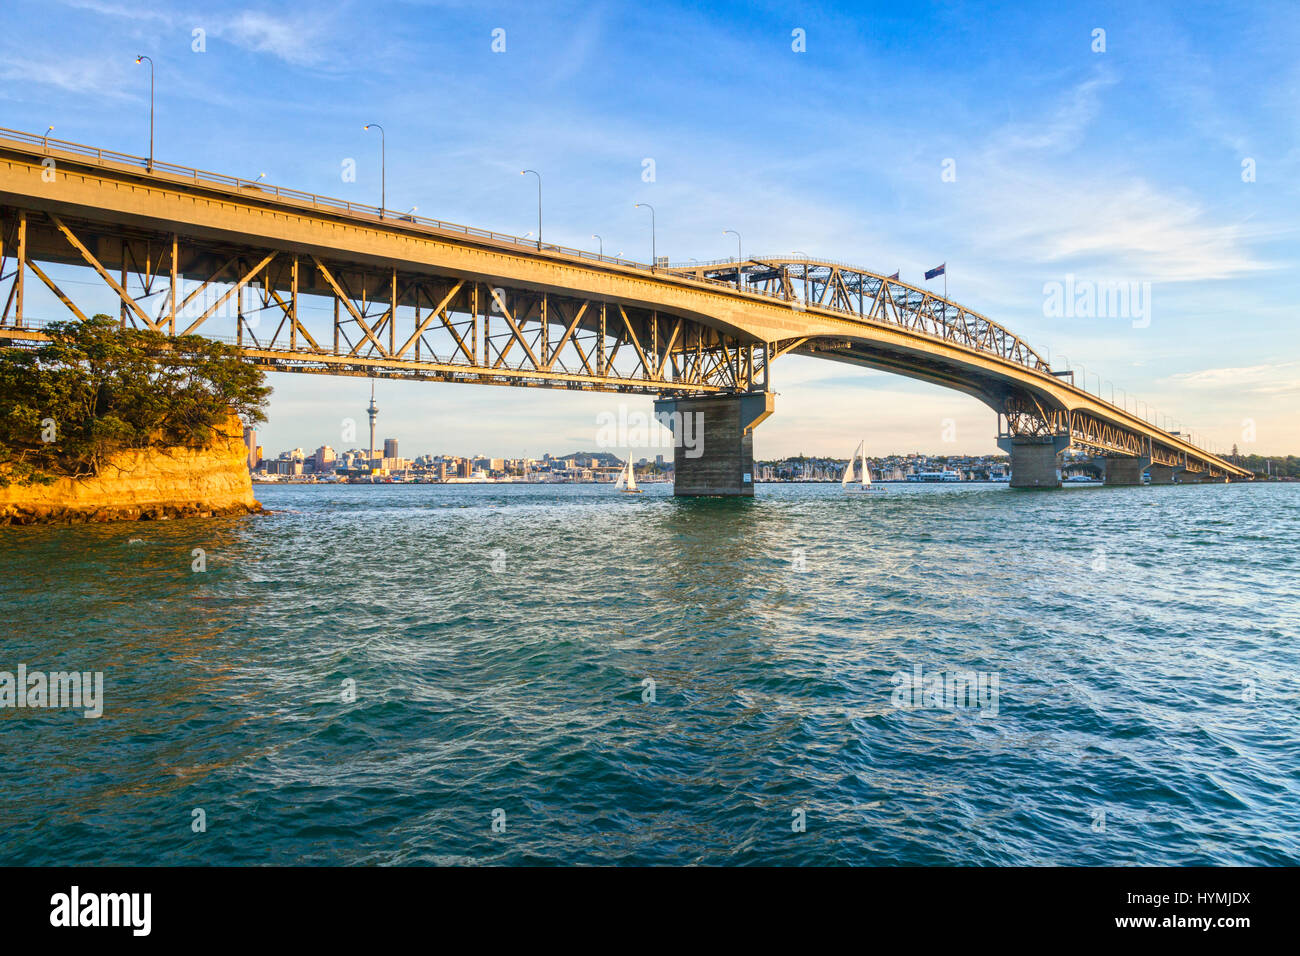 Auckland Harbour Bridge in evening light with yachts passing under. - Stock Image